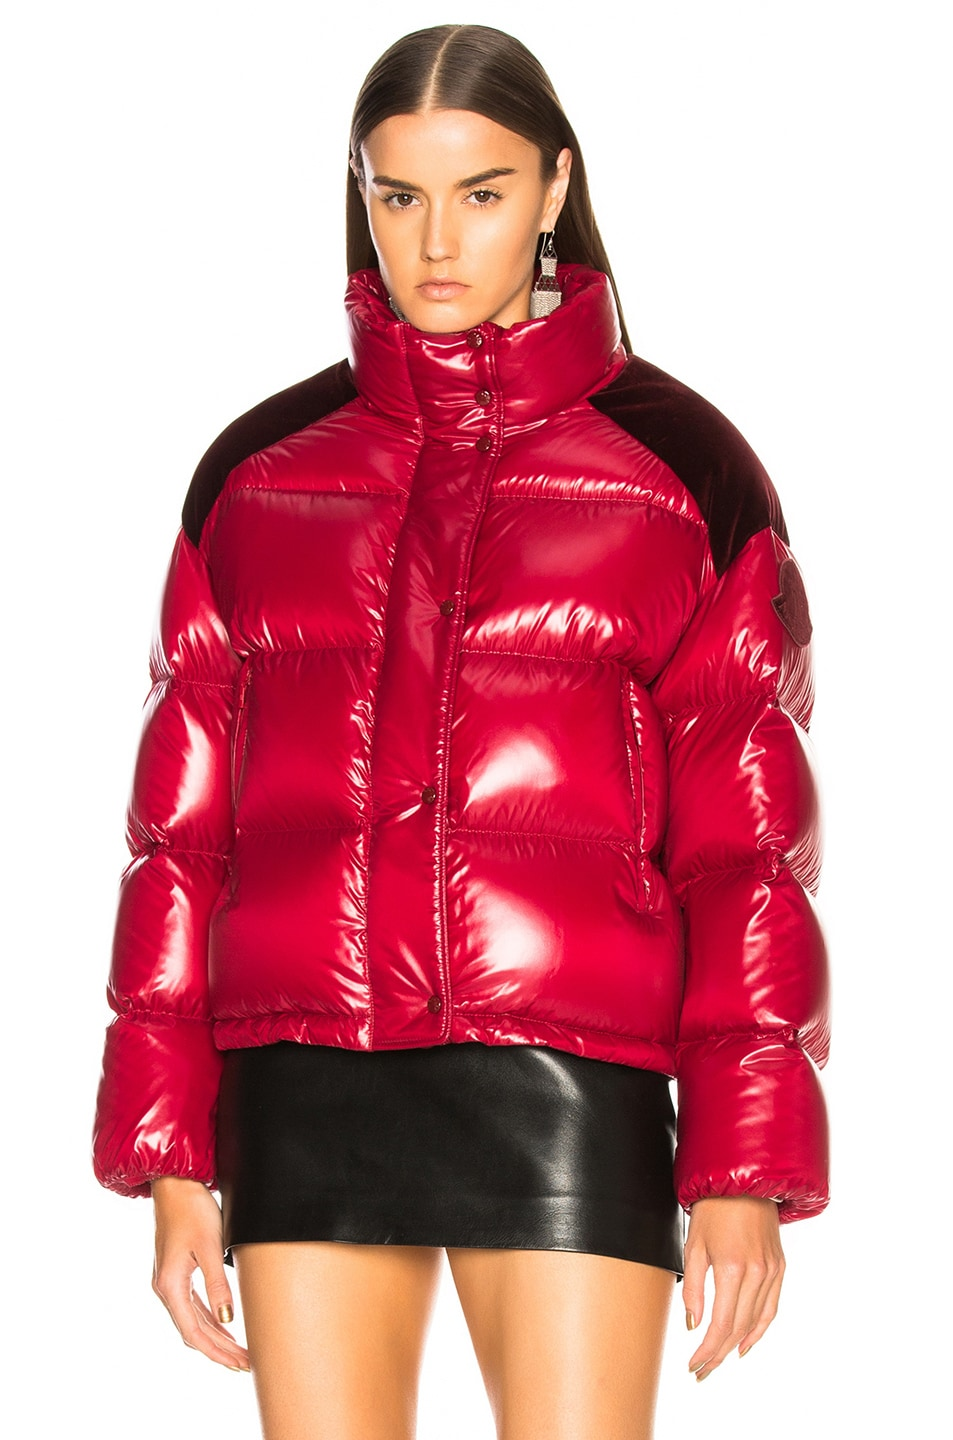 Image 2 of Moncler Chouette Giubotto Jacket in Red